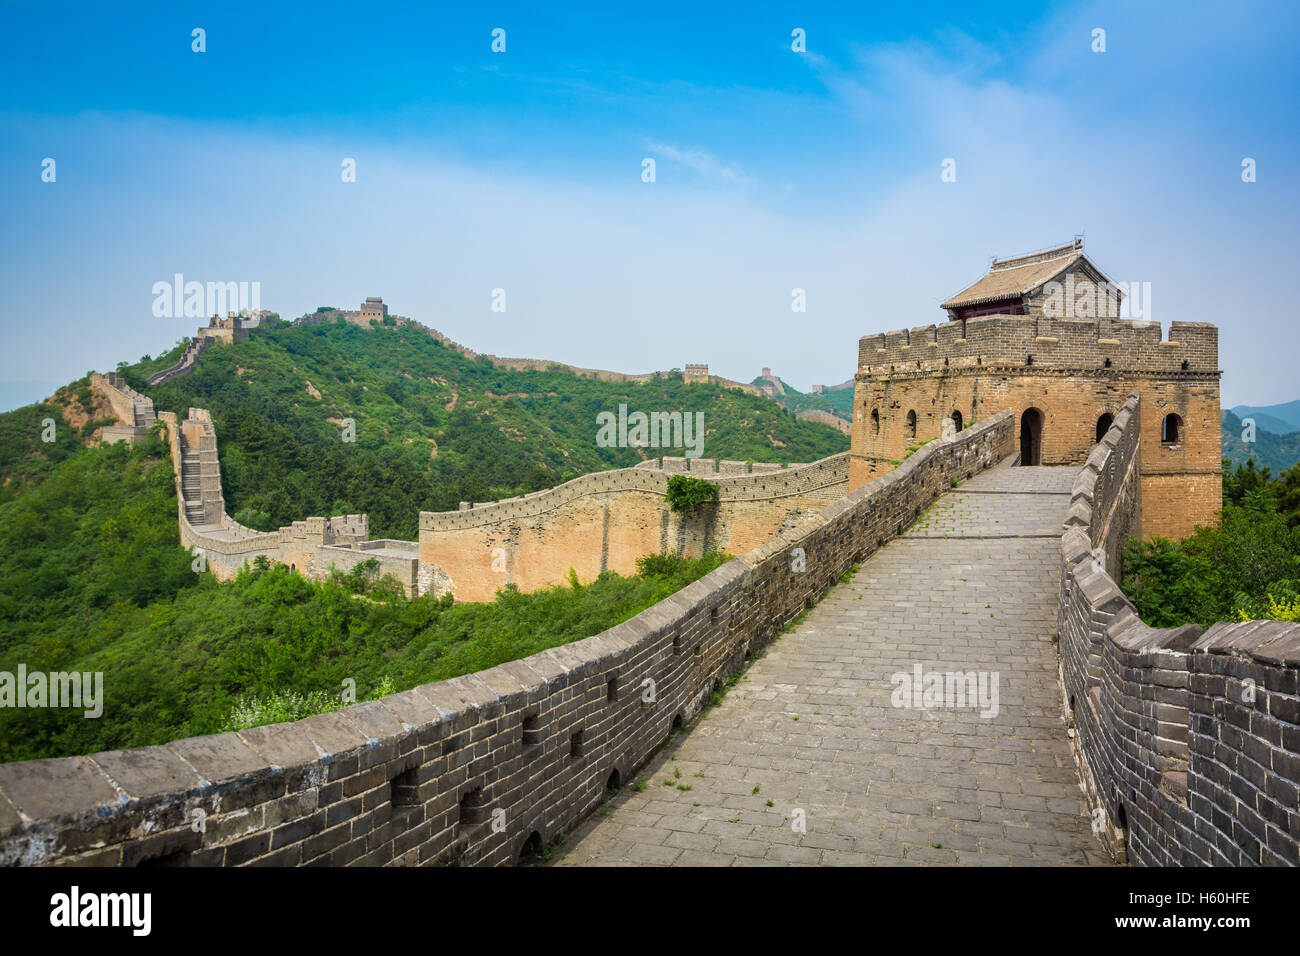 The Great Wall, Beijing, China - Stock Image